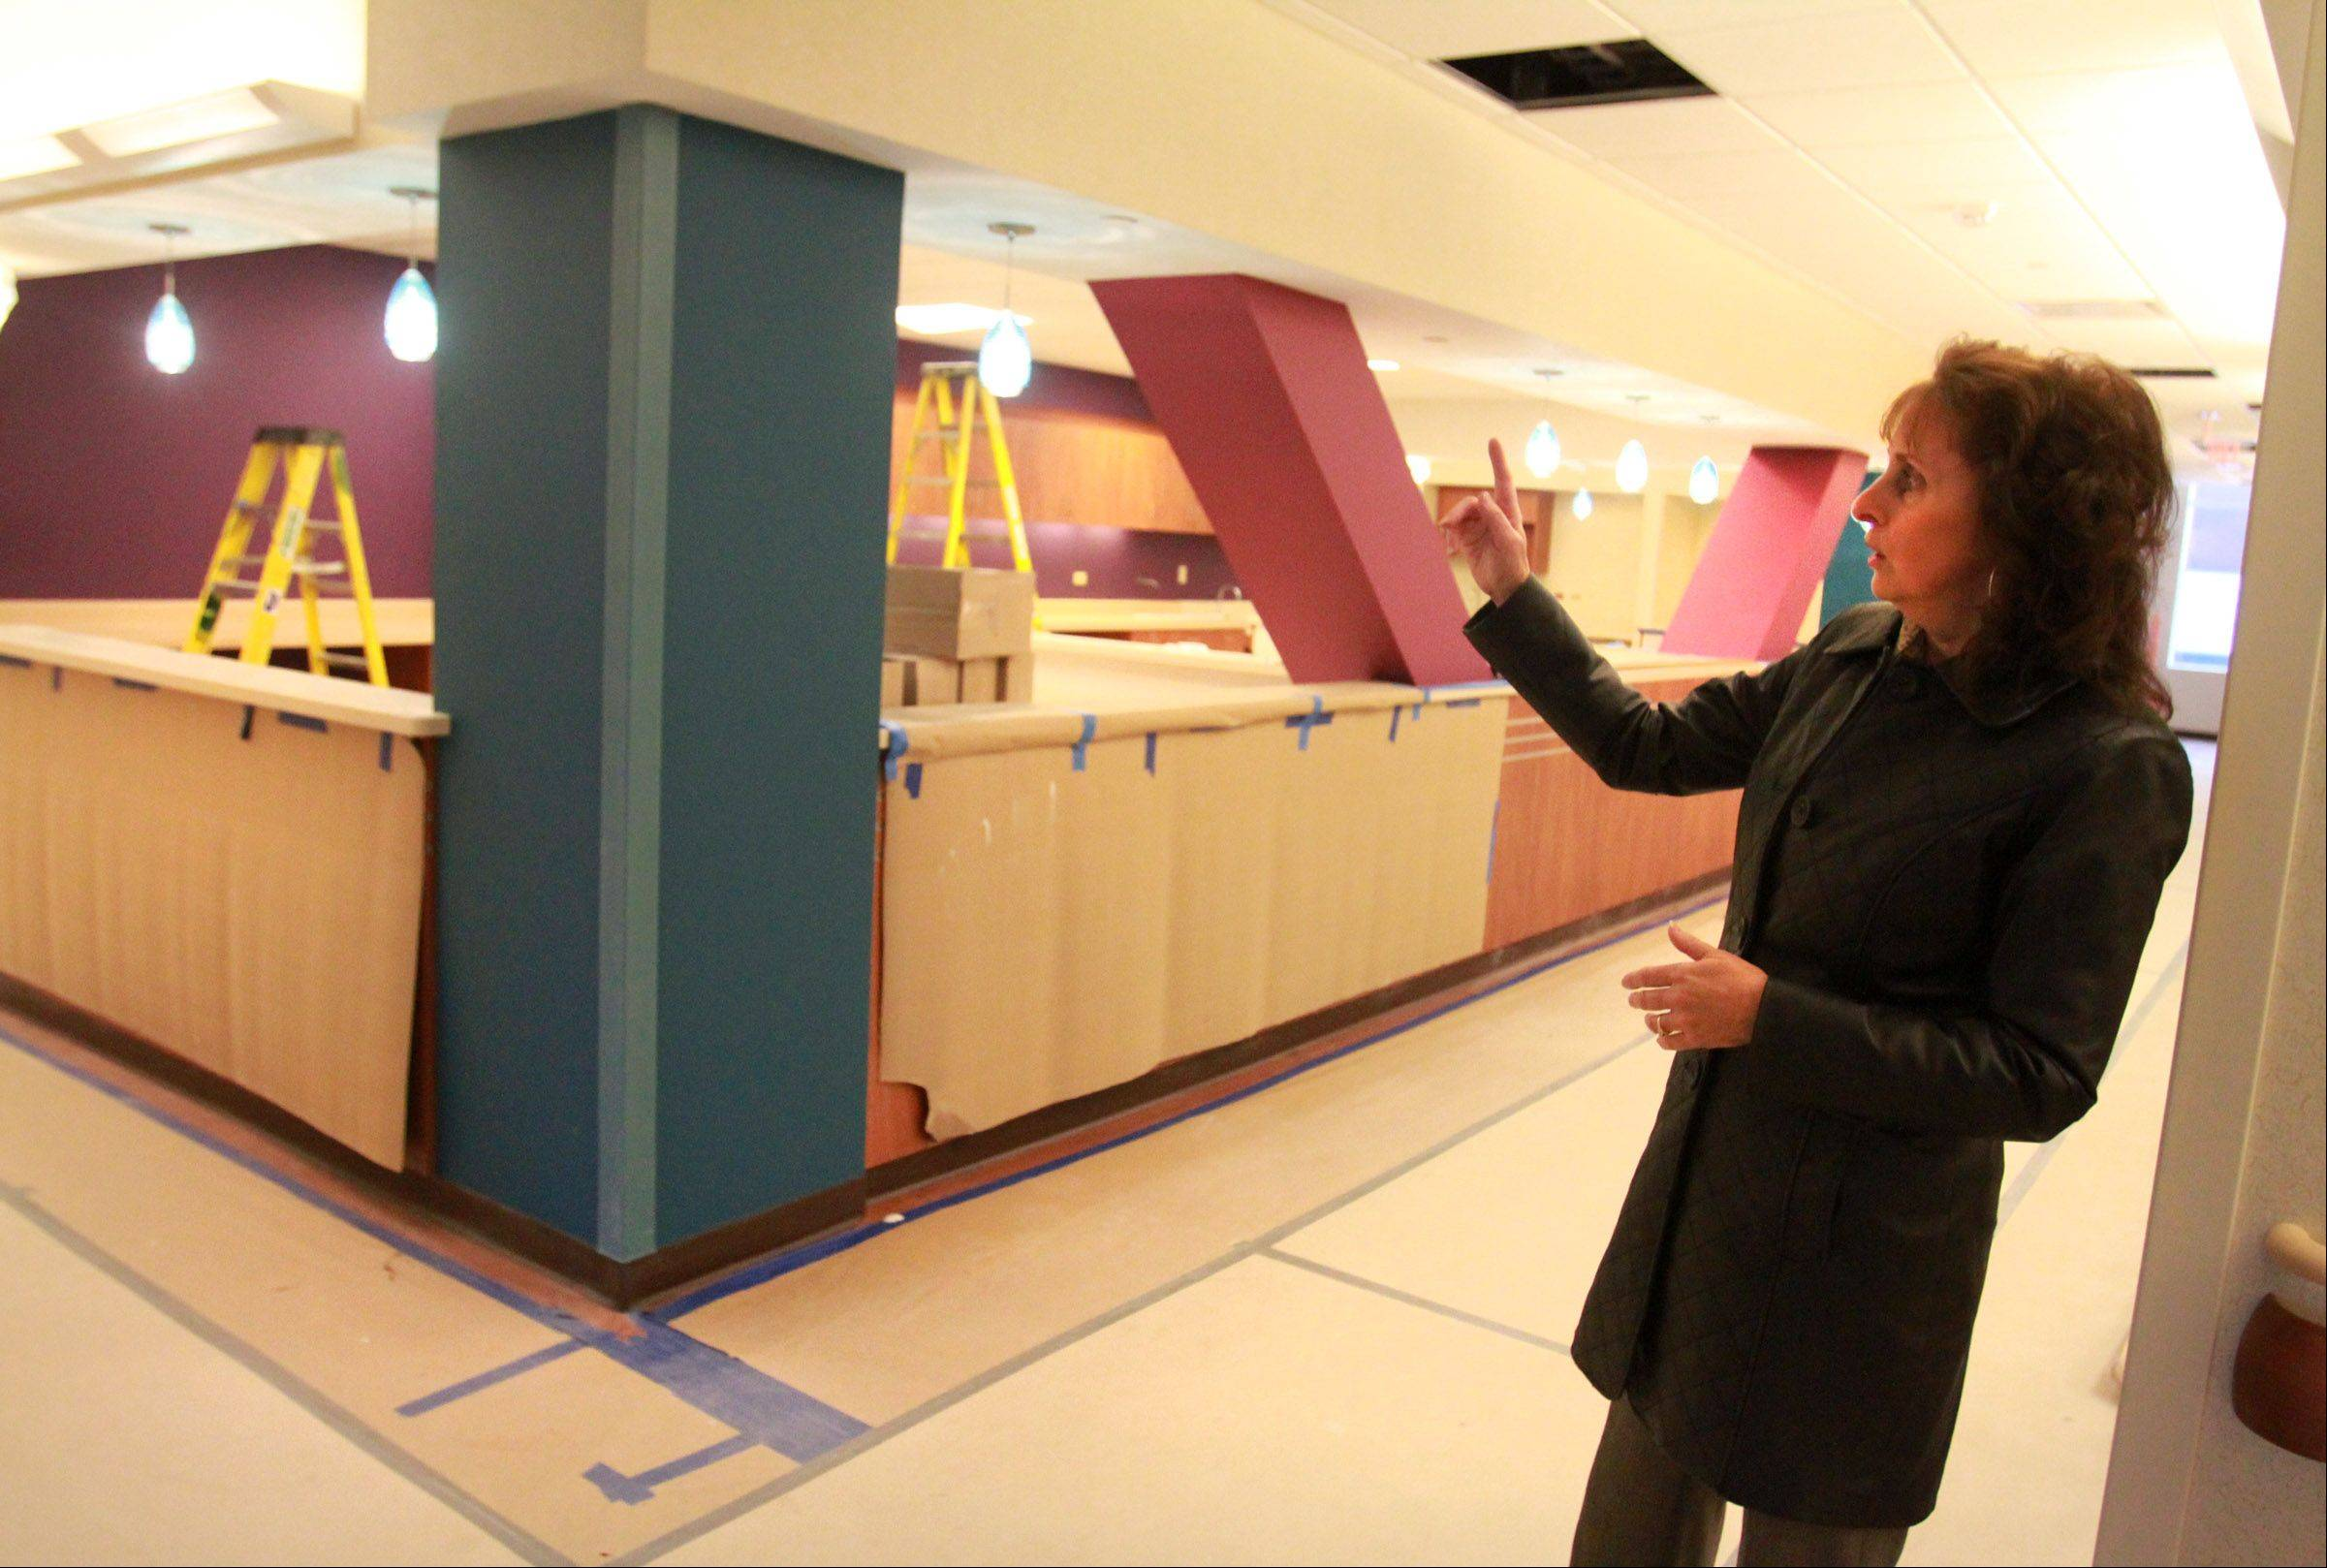 Joan Cappelletti, executive director of nursing at St. Alexius Medical Center, talks about a nursing station in the new Alexian Brothers Women and Children's Hospital in Hoffman Estates. Construction on the hospital, which is slated to open in the spring, is well under way.